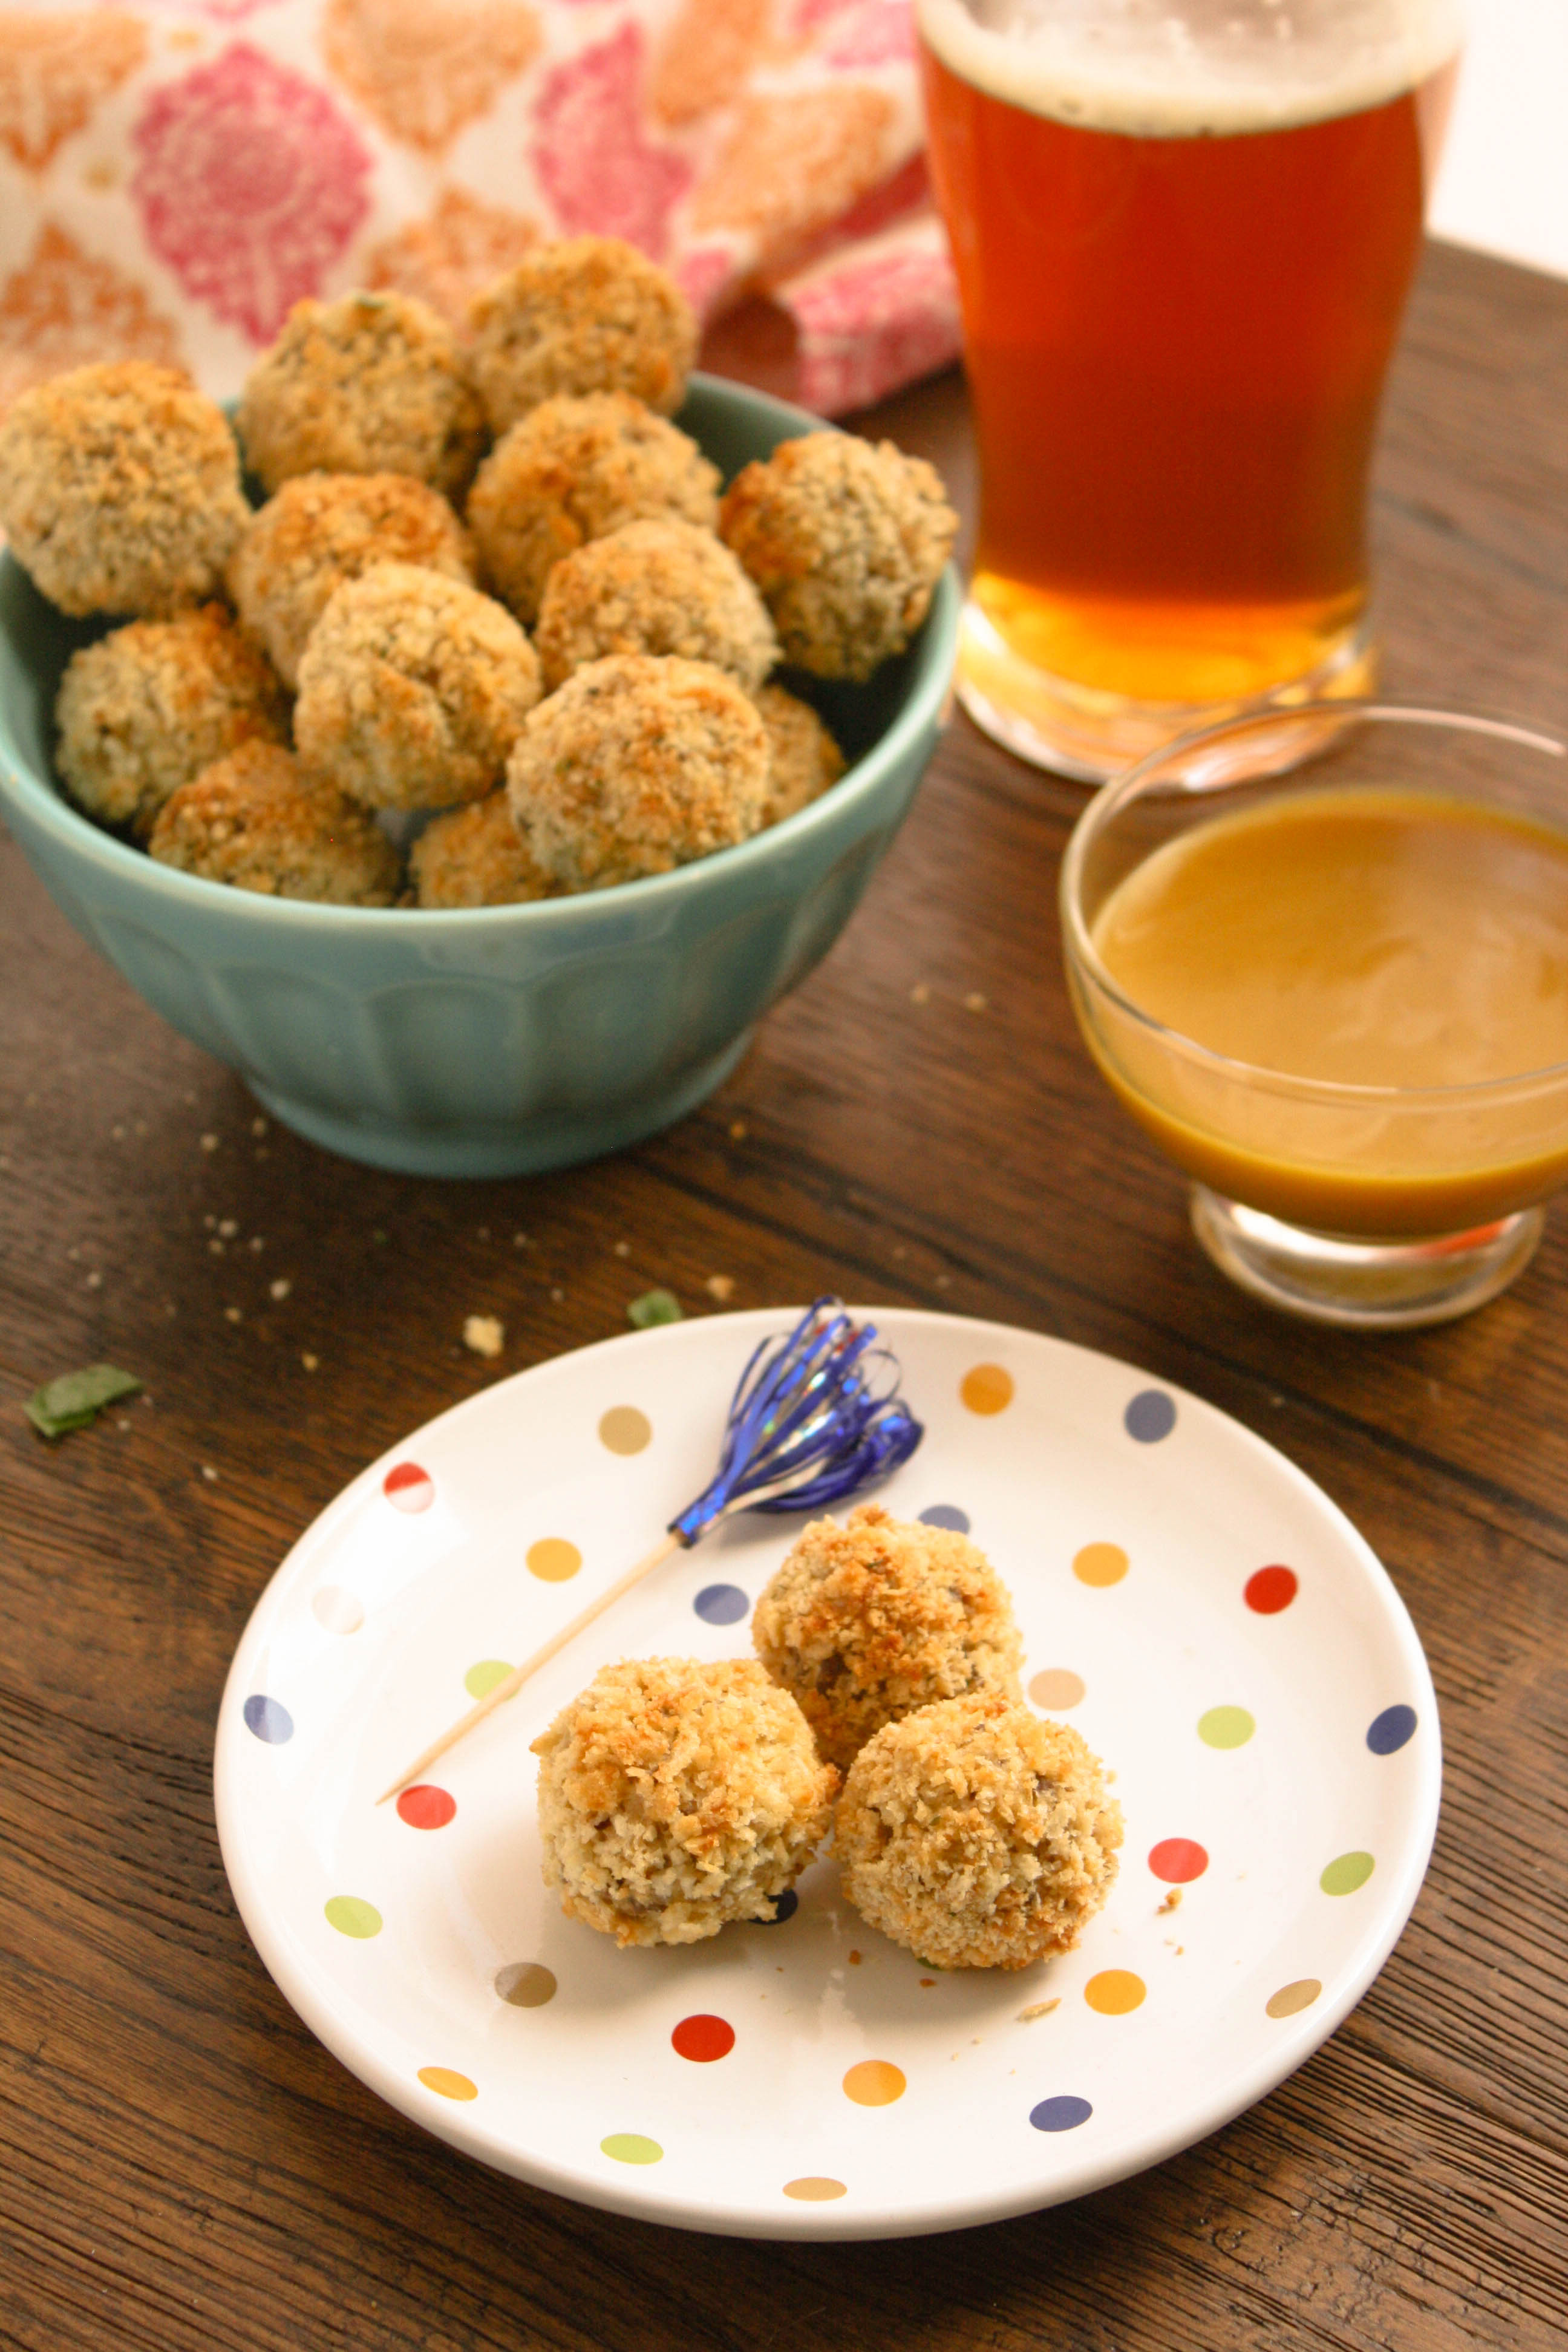 Baked Sauerkraut Balls are a delight! Perfect for a party this baked (not fried) appetizer is so good!